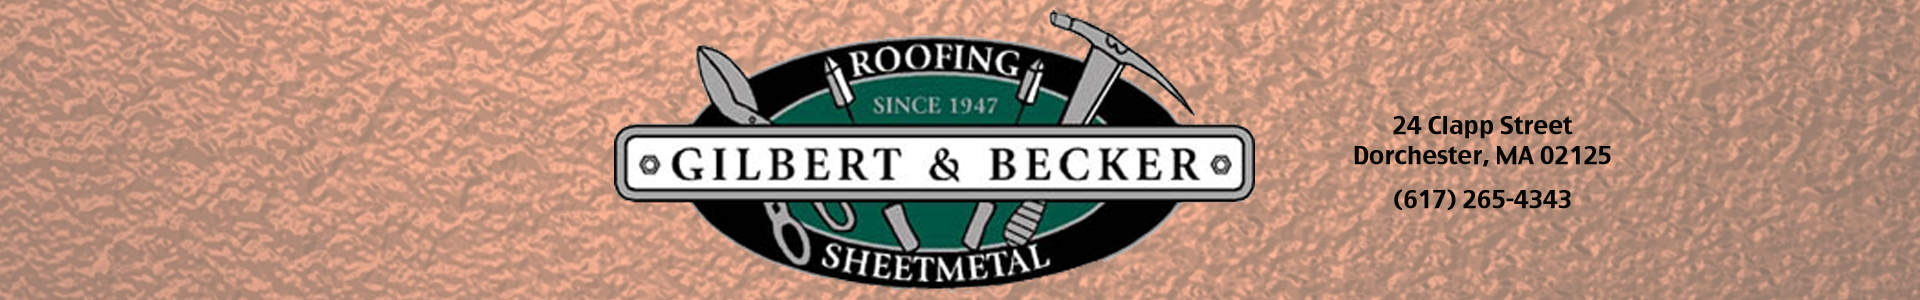 Gilbert & Becker Roofing